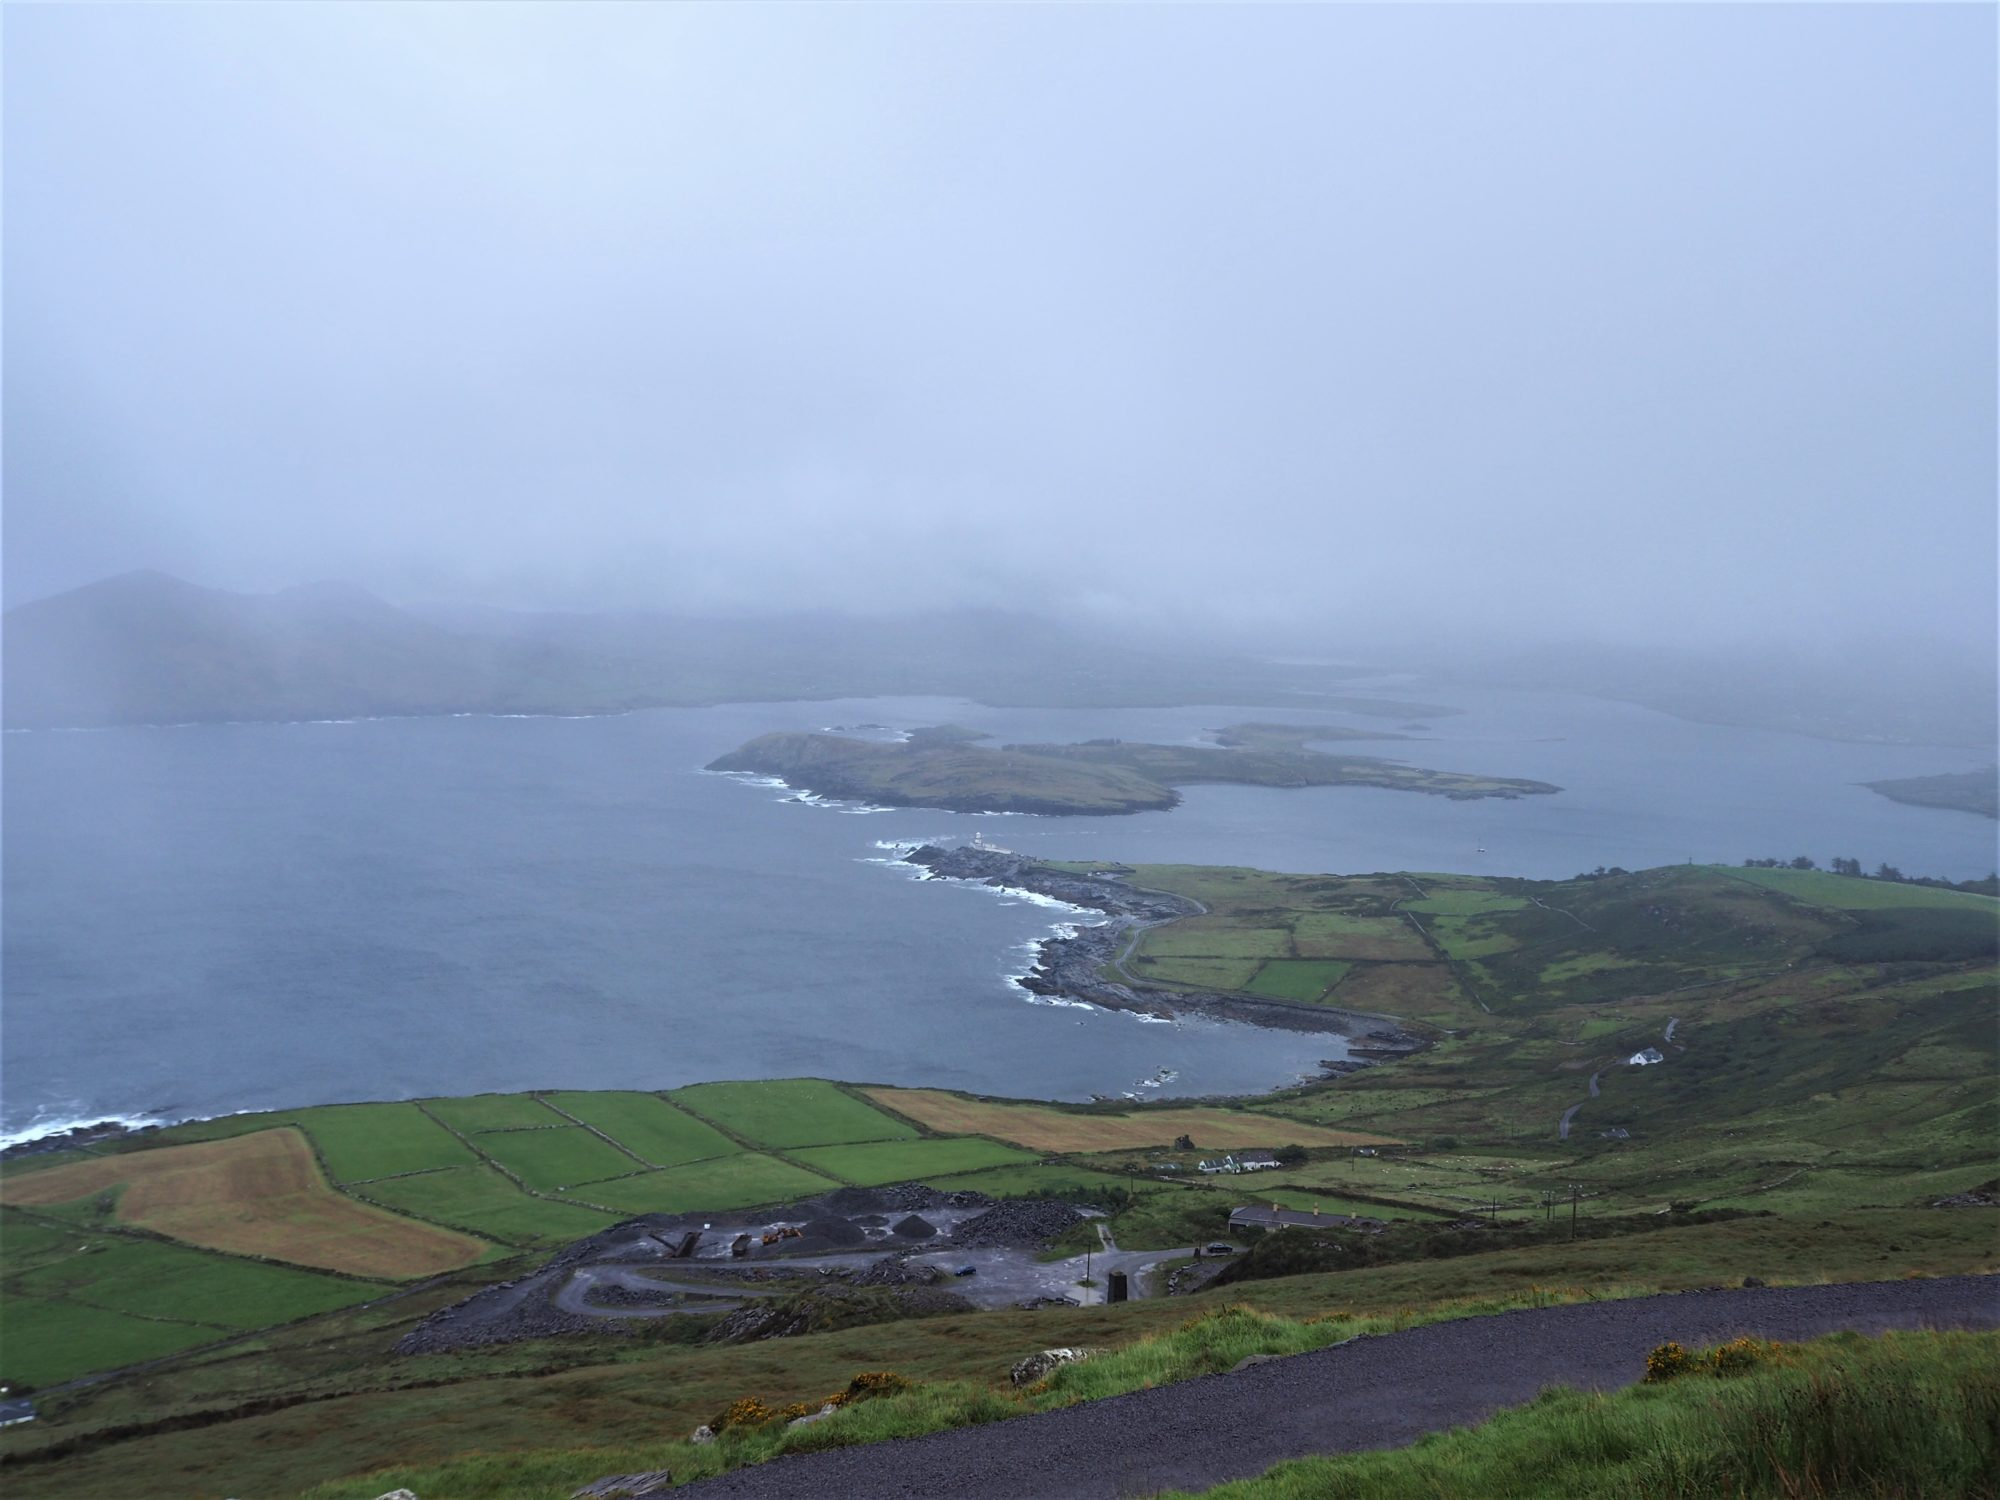 Valentia Island, Ring of kerry, Irlande Vue sur le phare